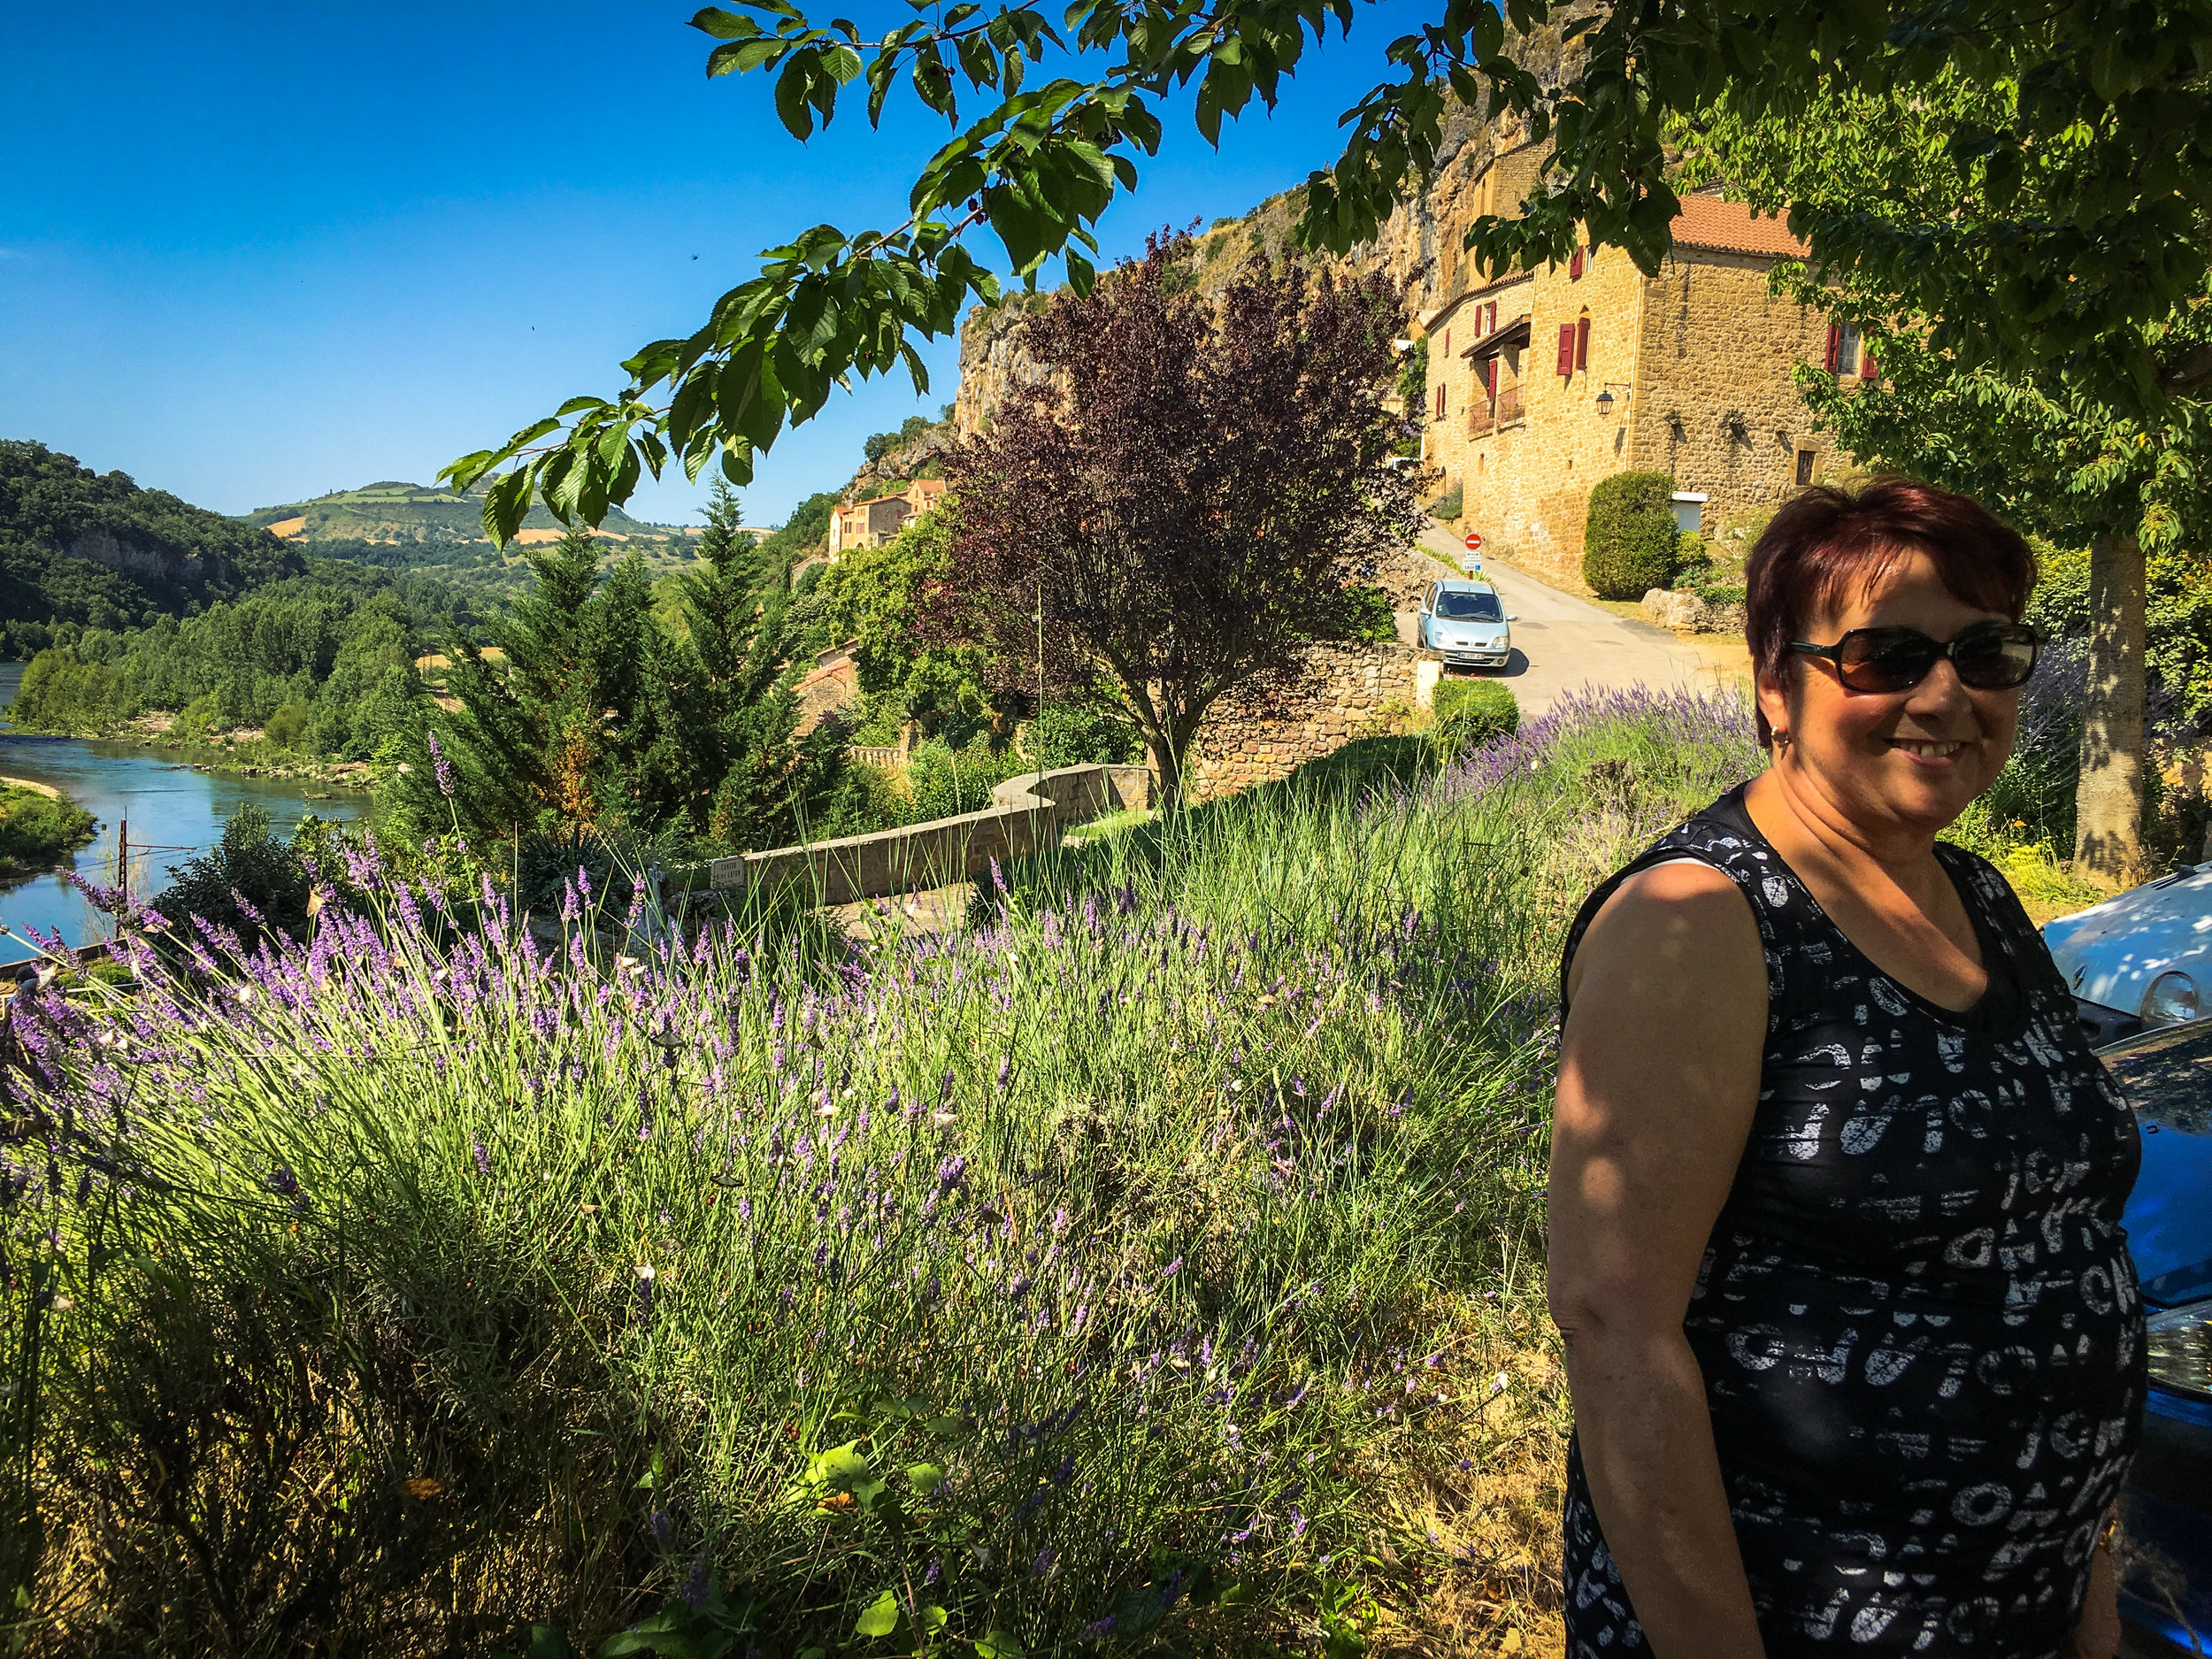 Doris at the semi-troglodyte village of Peyre. And yes, it is lavender right behind Doris.